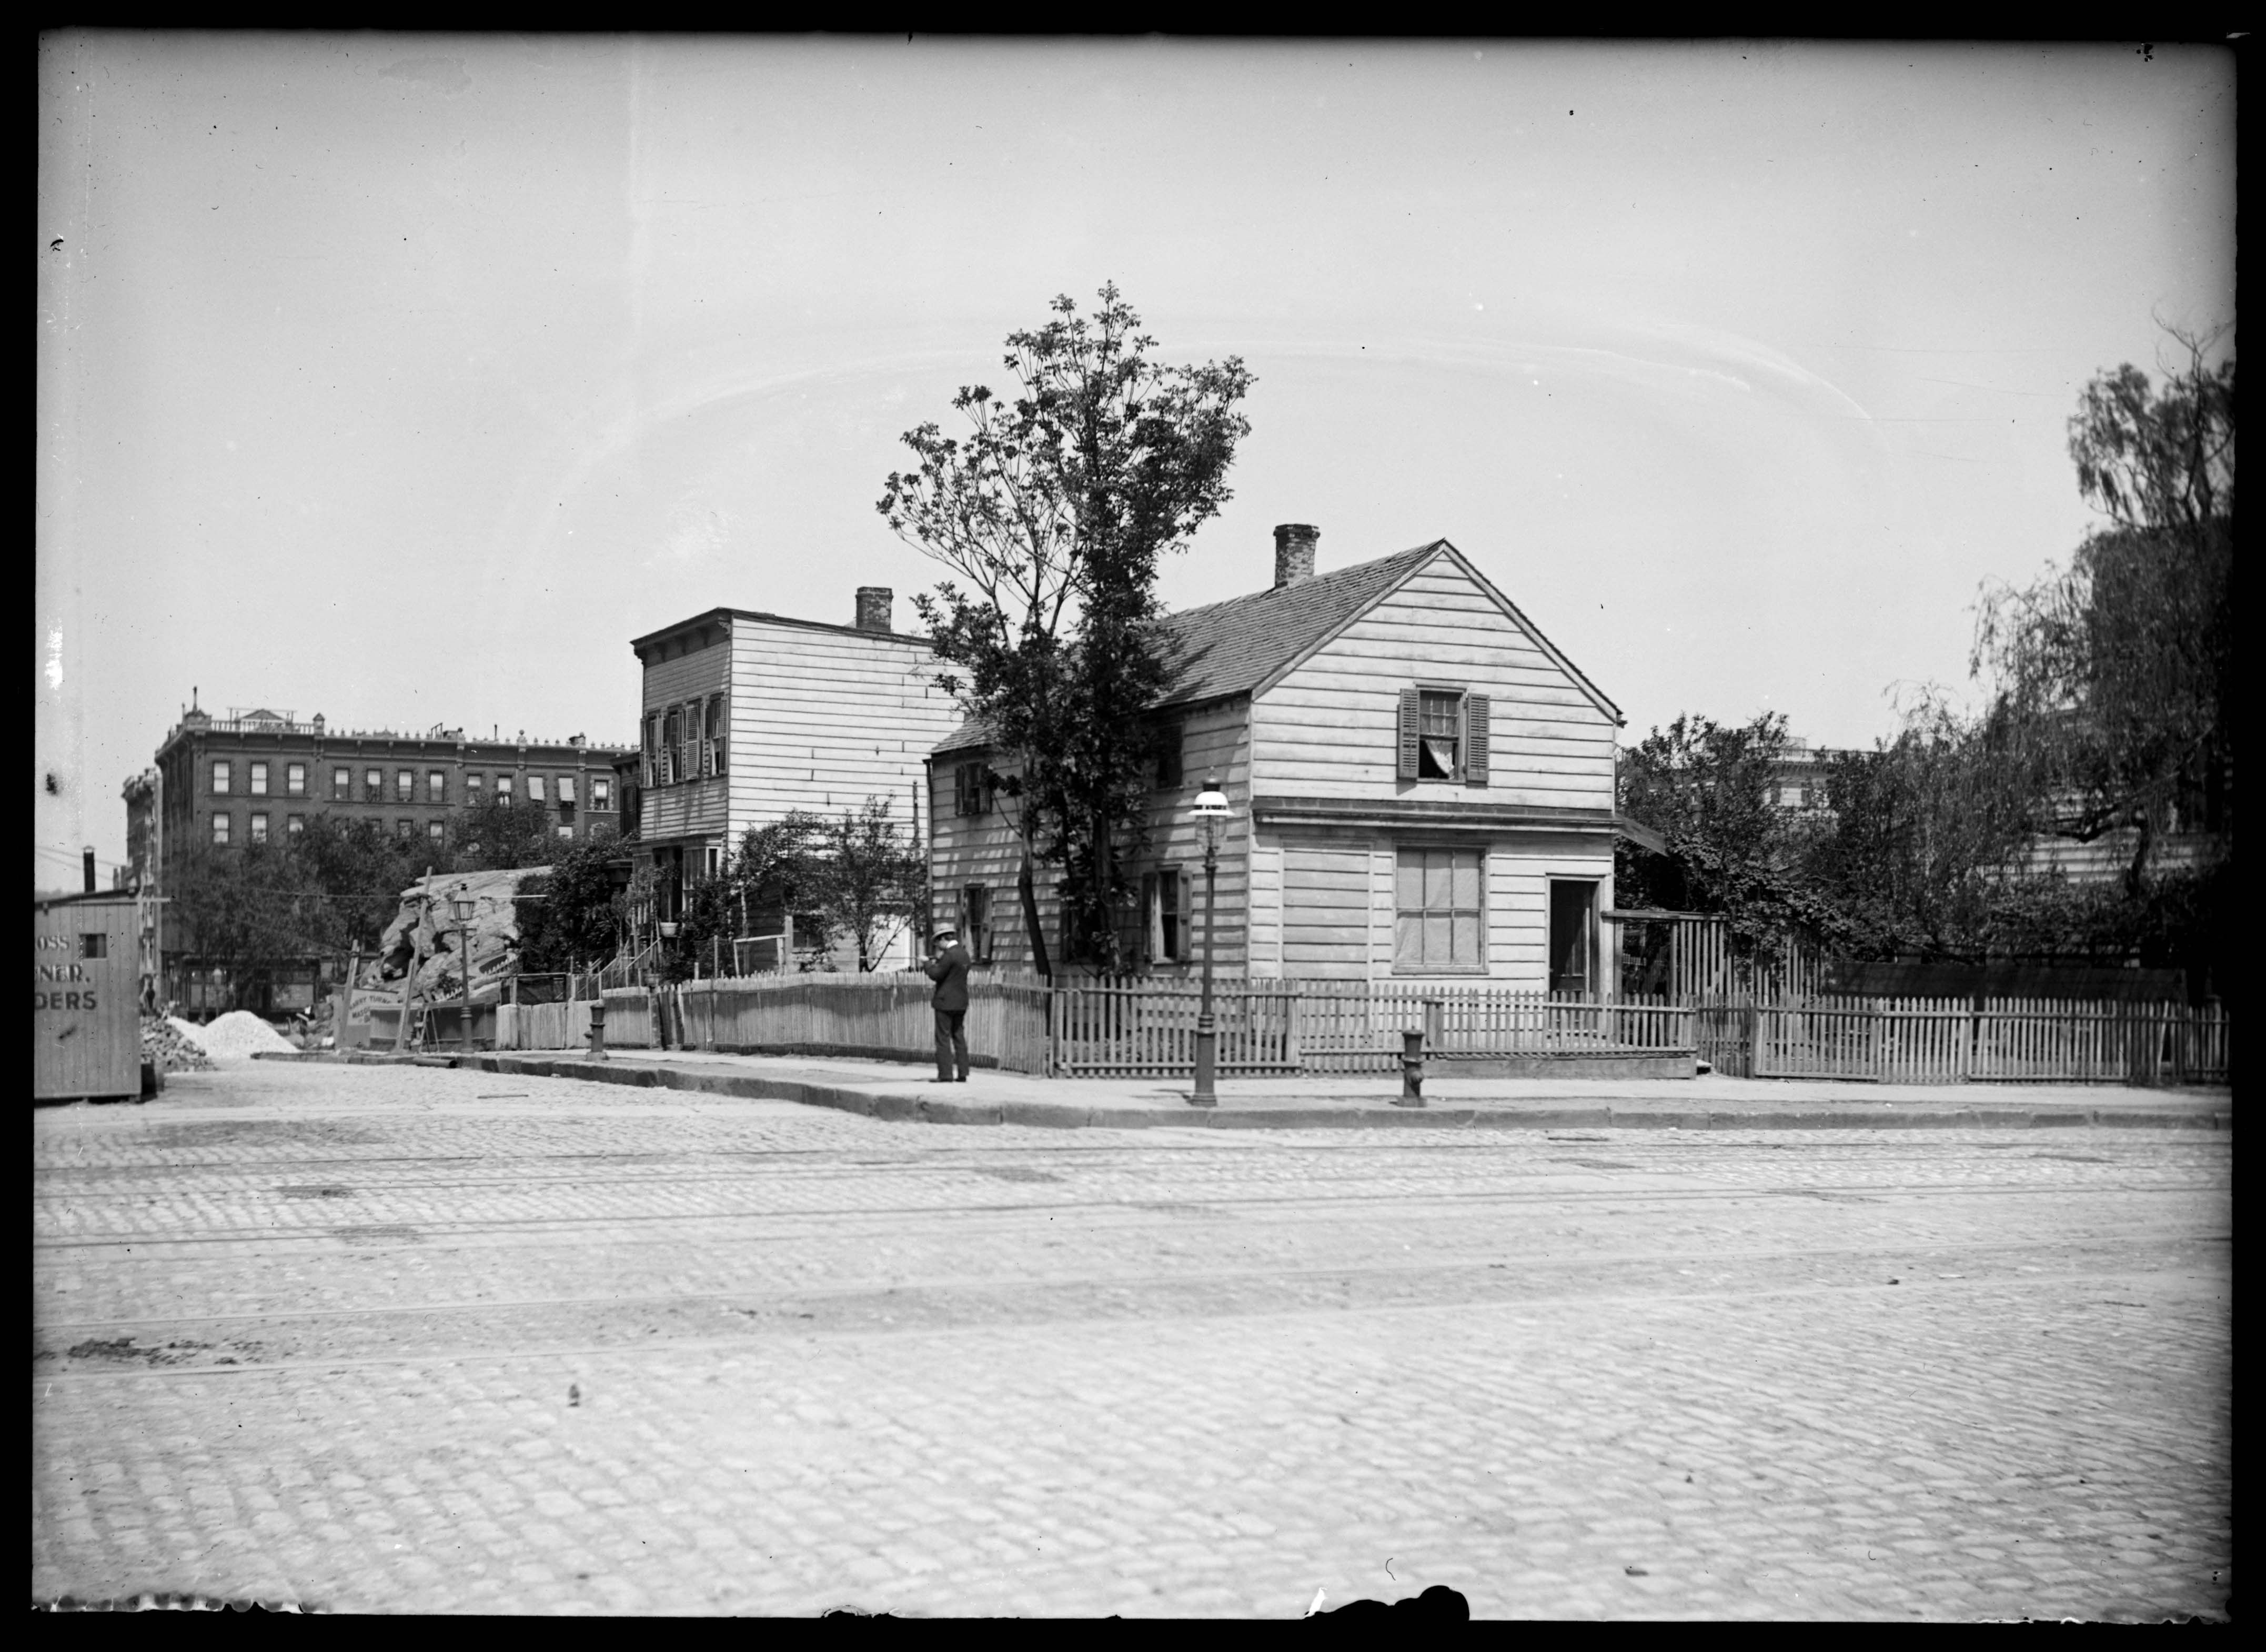 Old Wooden Houses At Amsterdam Avenue And W 92nd Street New York